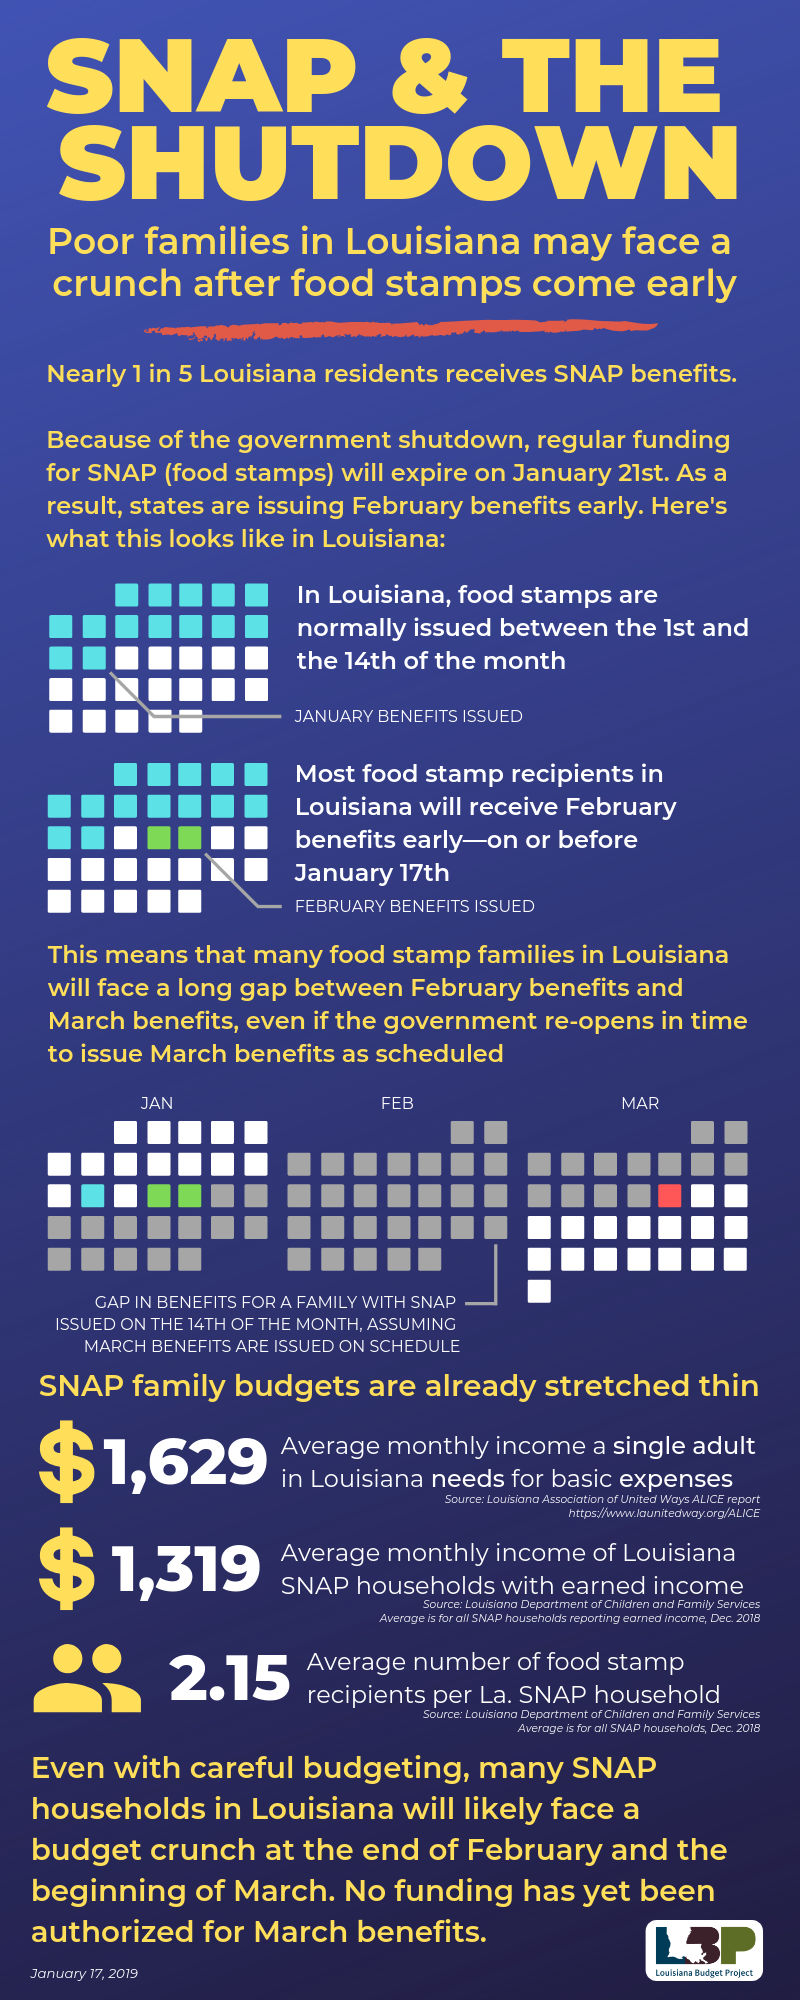 SNAP-Shutdown-Infographic-LBP